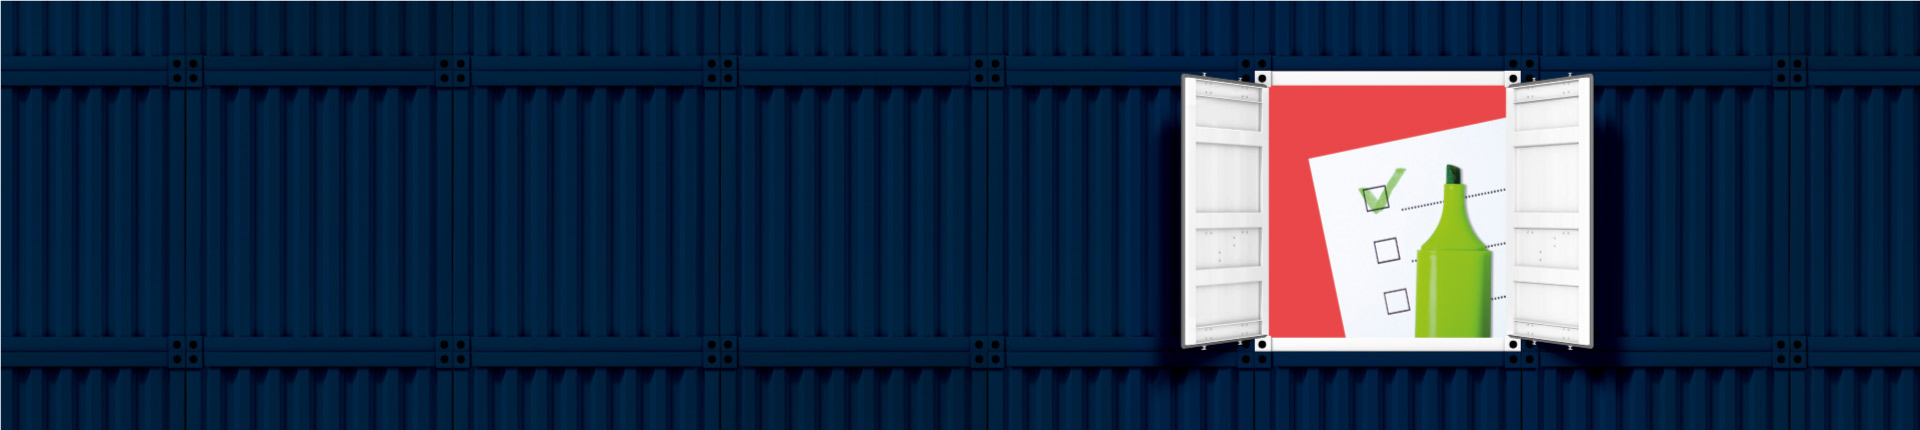 CONTAINER Grade Selection